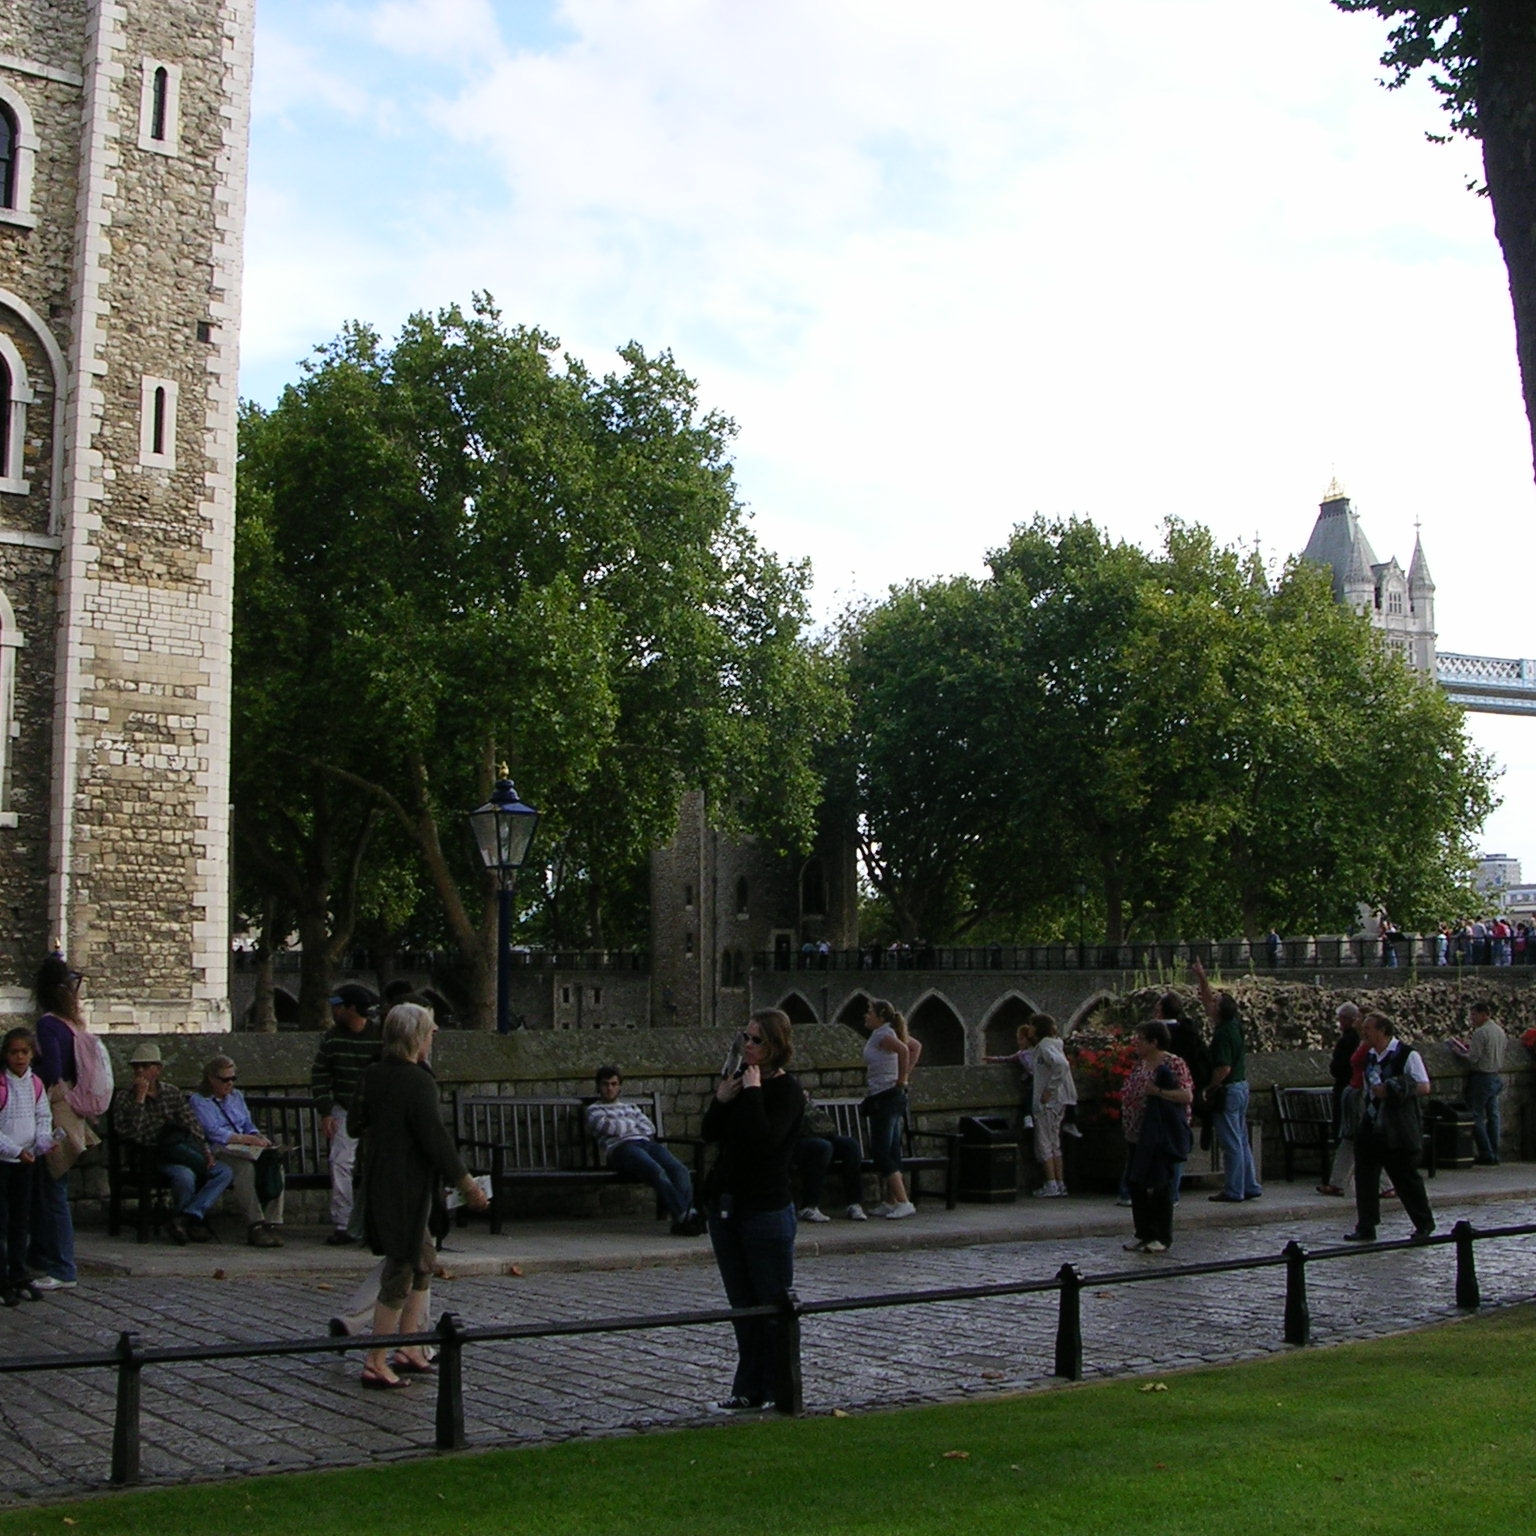 Tower of London by The Doubtful Traveller